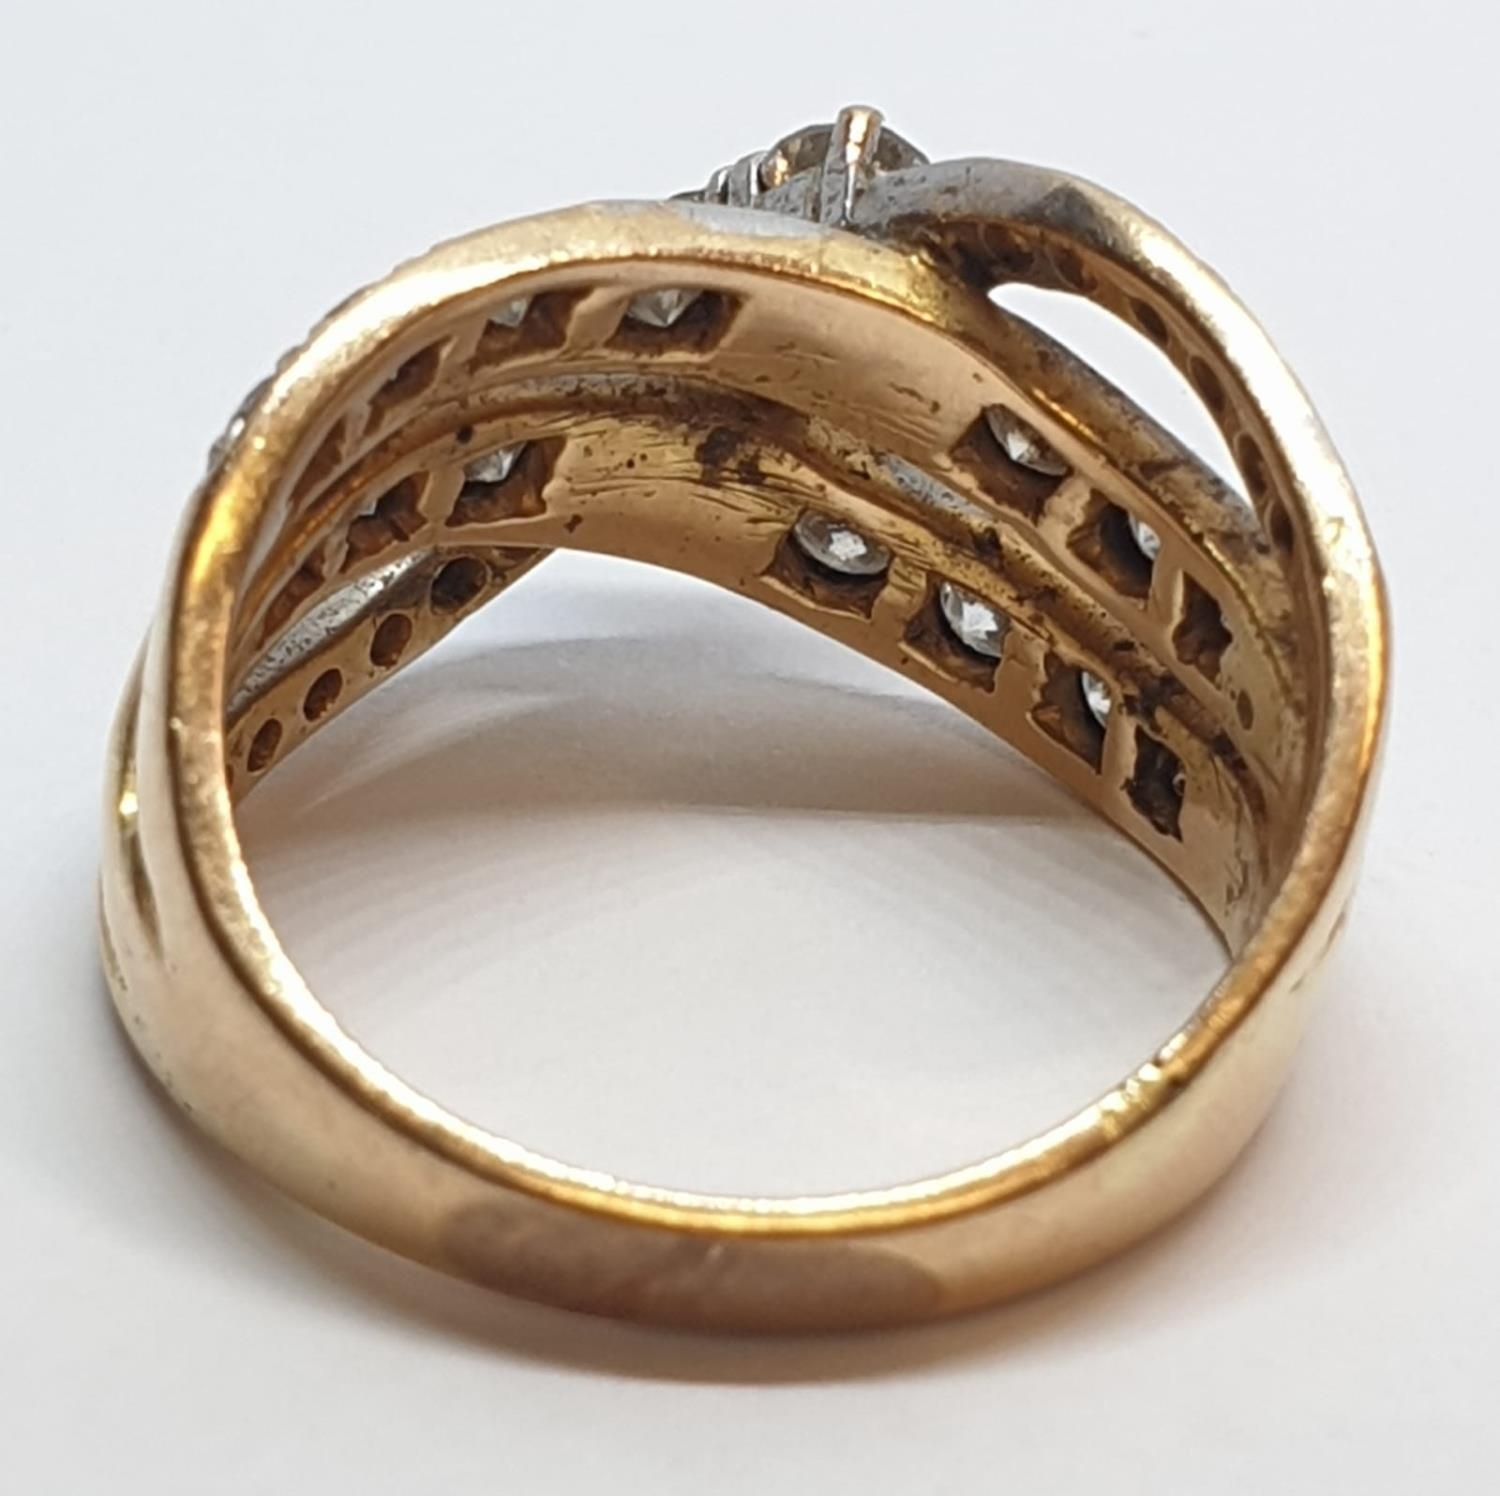 18ct Yellow gold diamond set fancy three row twist band ring. Weight 8.5g, Approx. 0.60ct of - Image 8 of 14